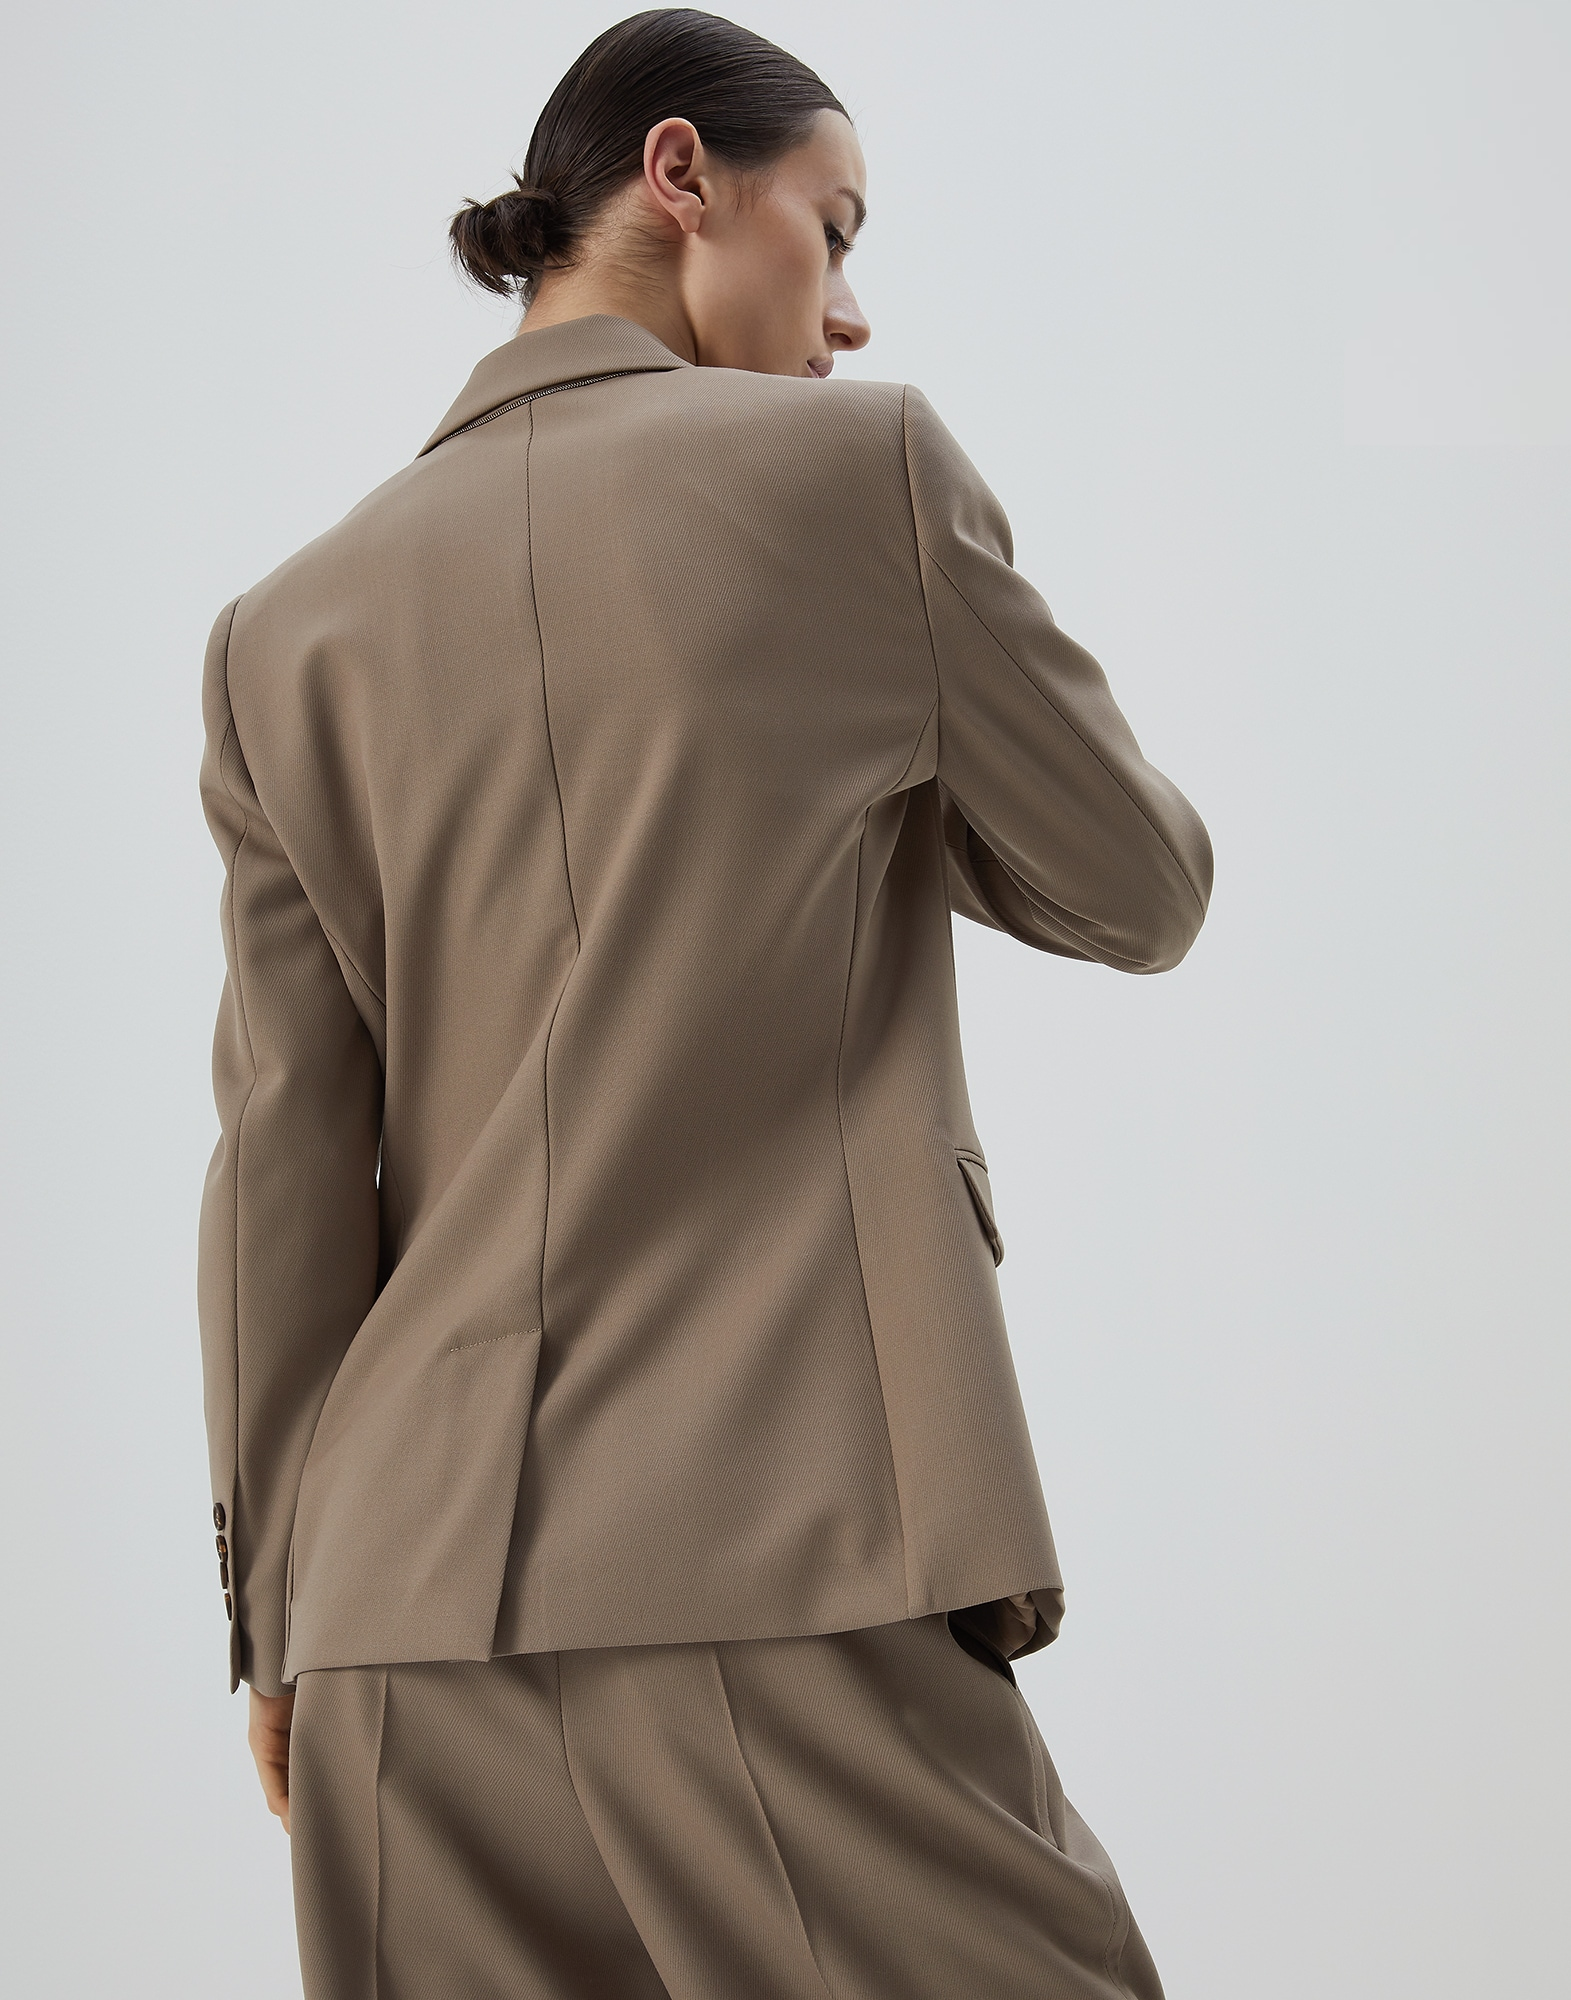 Blazer Brown Woman 1 - Brunello Cucinelli